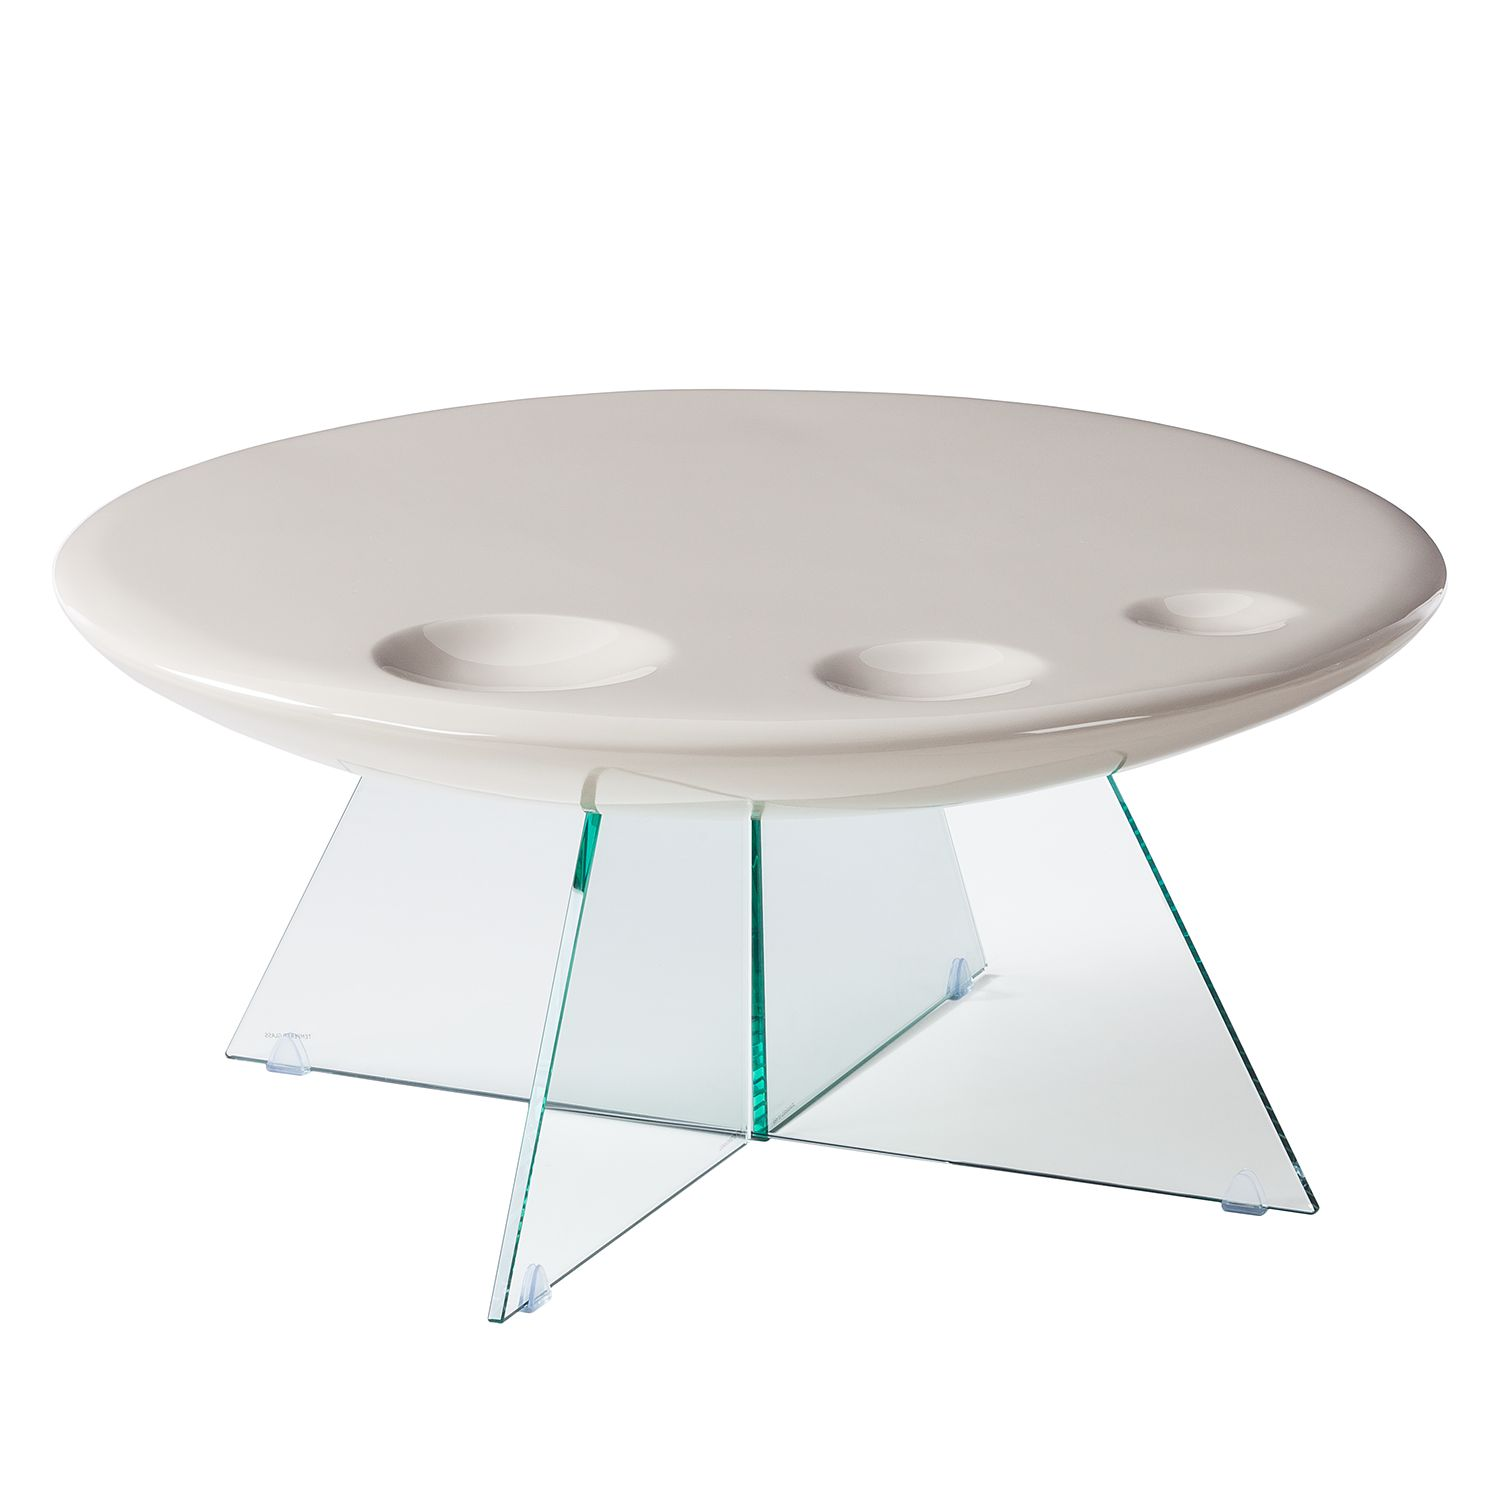 Table basse Ayon - Gris clair brillant, Fredriks